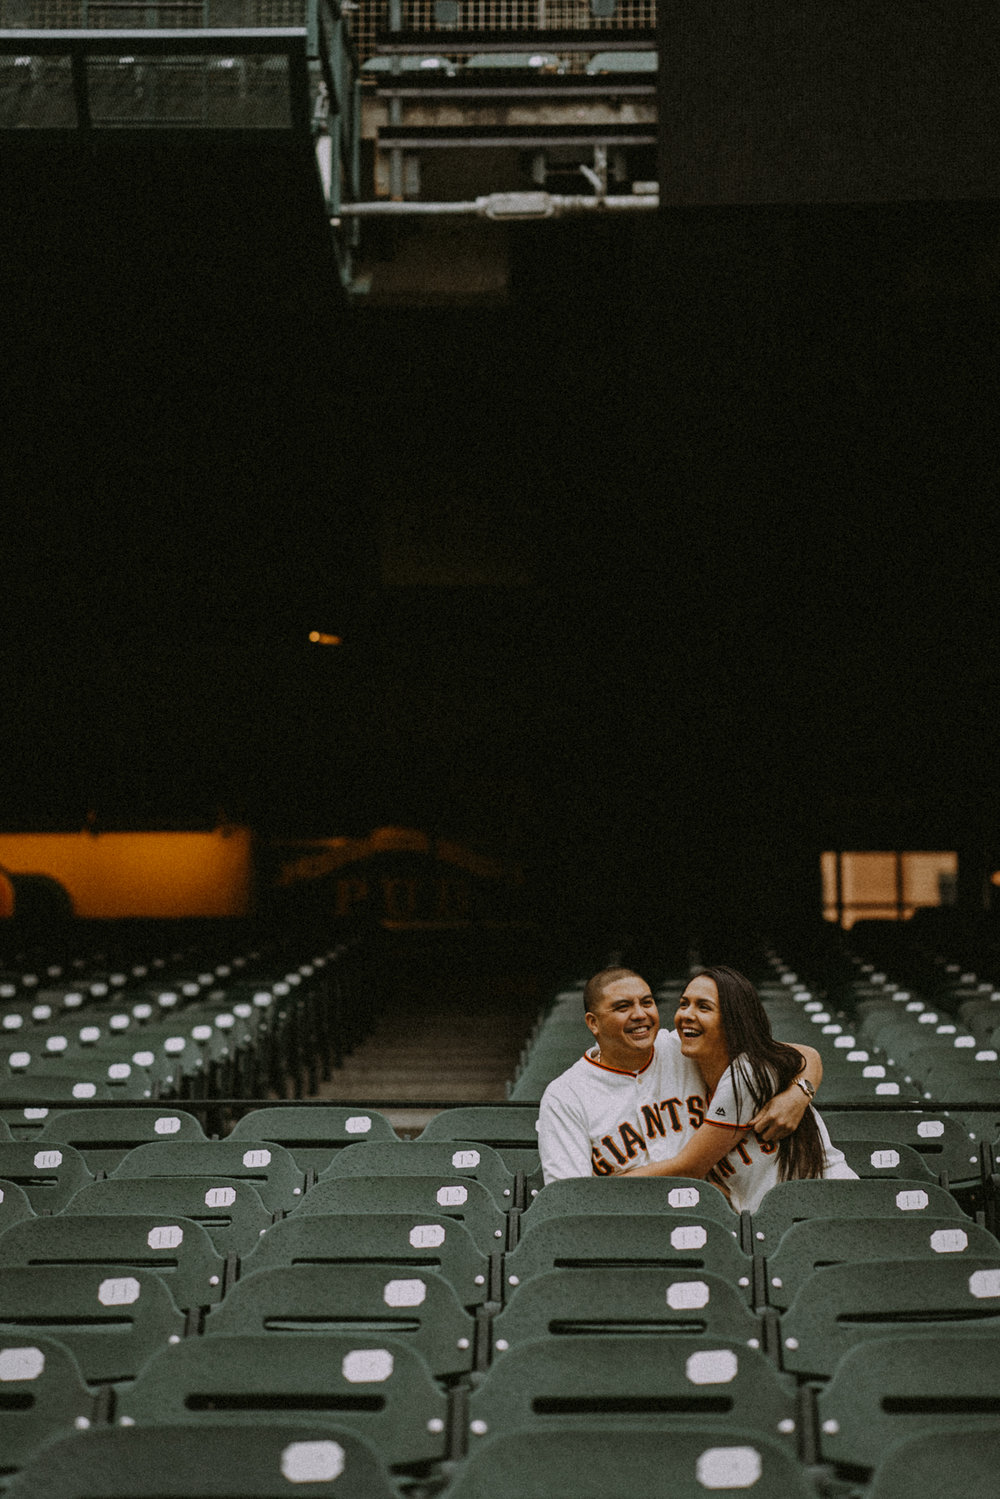 San-Francisco-engagement-wedding-photographer-Giants-AT&T-Park-3.jpg